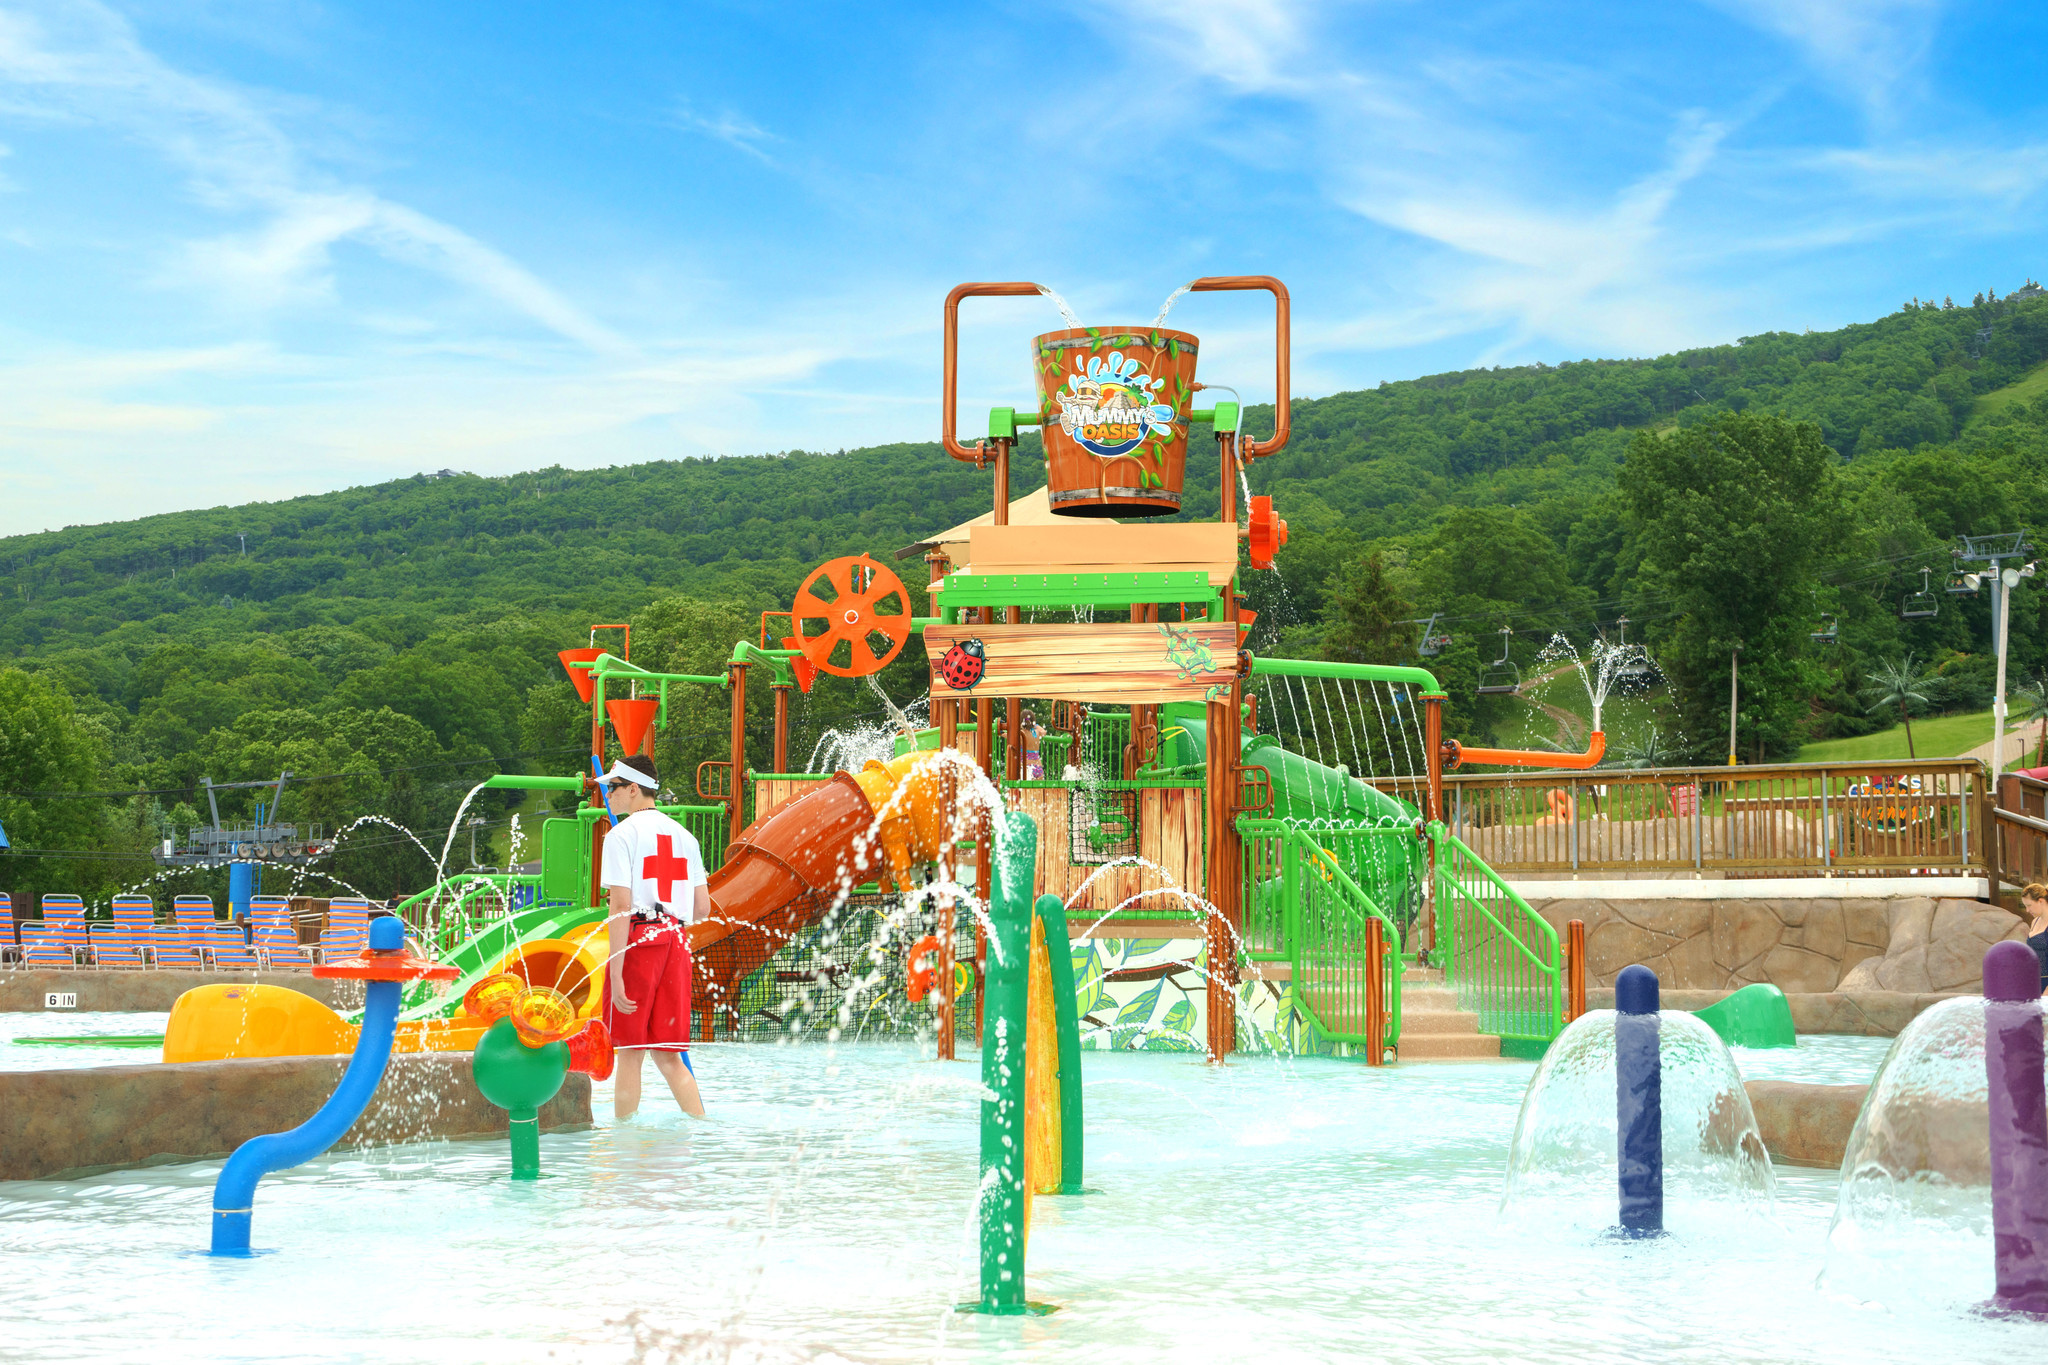 Camelbeach Unveils New Kids Zone To Open Alpine Slide In Summer The Morning Call